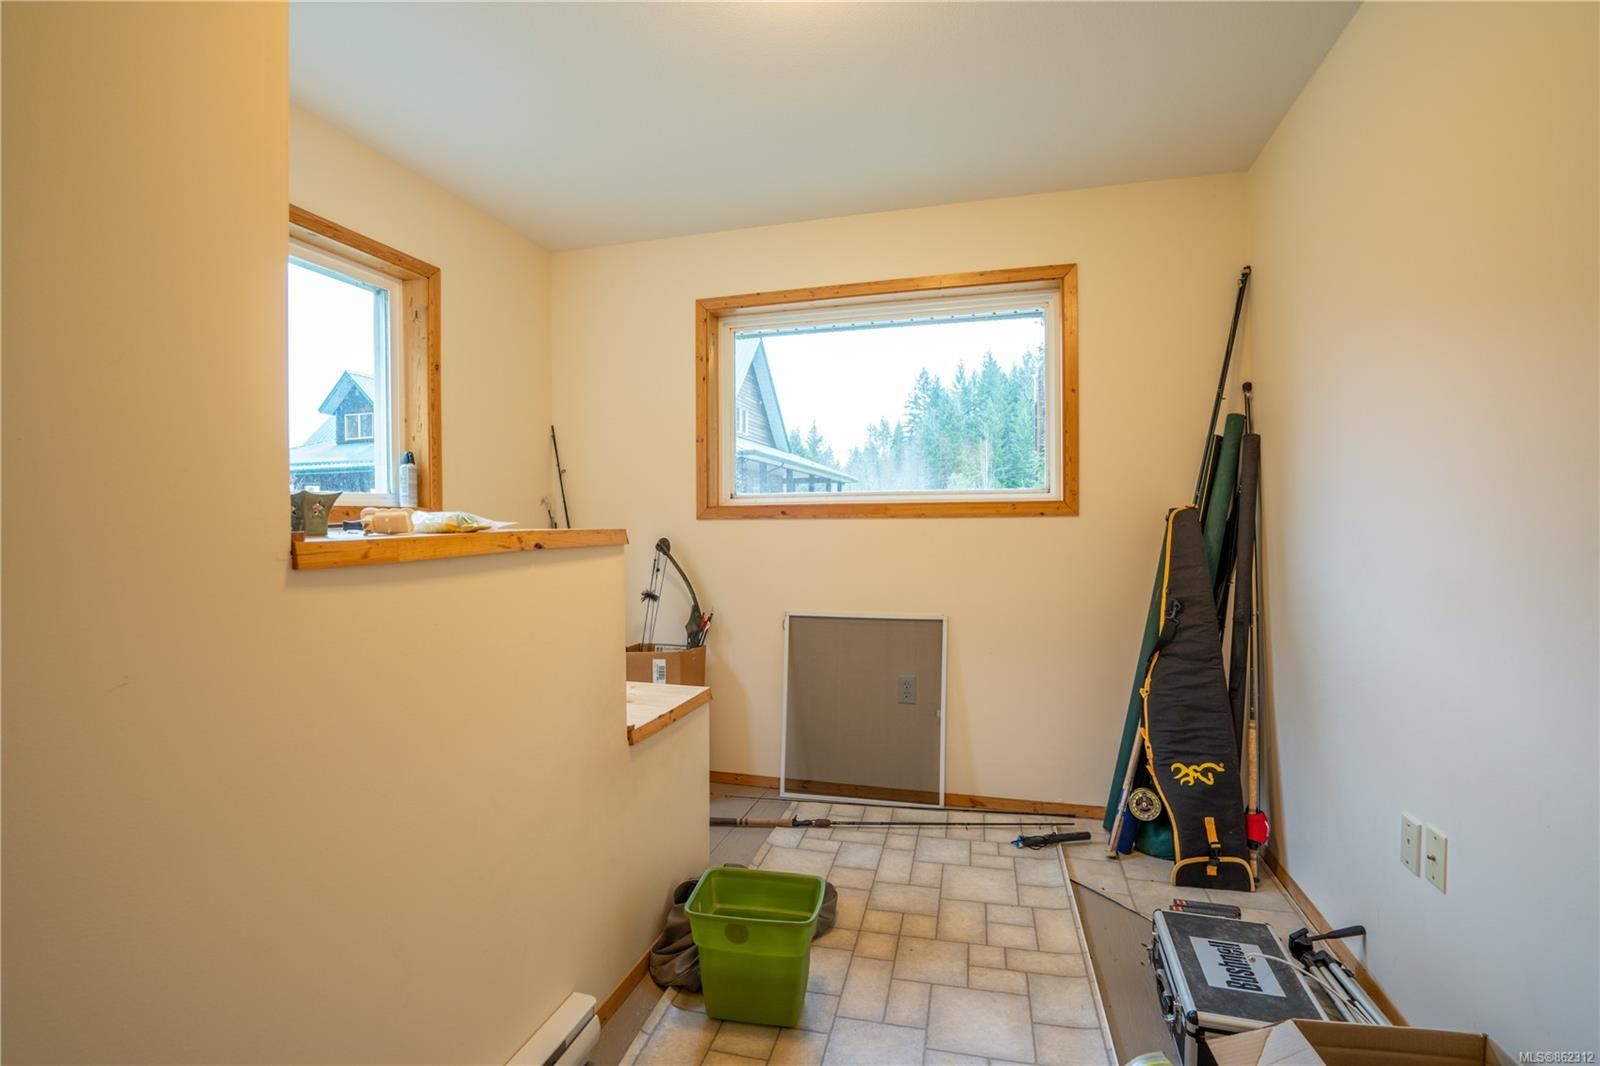 Photo 45: Photos: 7380 Plymouth Rd in : PA Alberni Valley House for sale (Port Alberni)  : MLS®# 862312